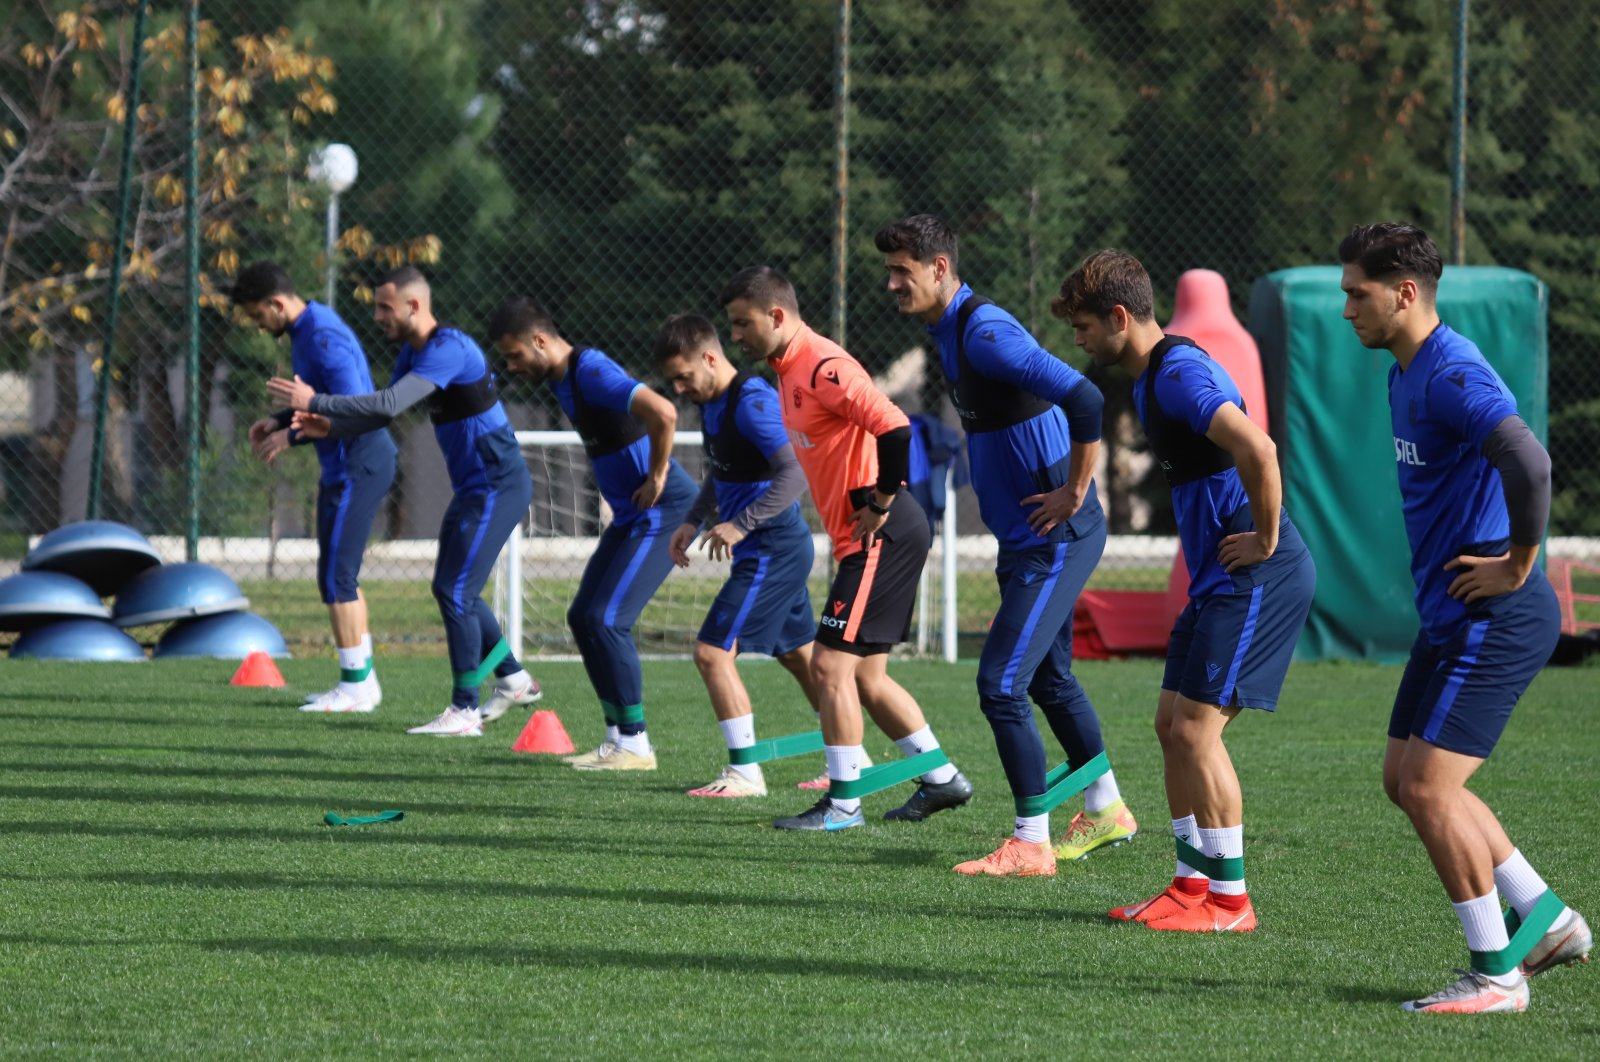 Trabzonspor players train for the Ziraat Turkey Cup, in Trabzon, northern Turkey, Dec. 13, 2020. (AA PHOTO)